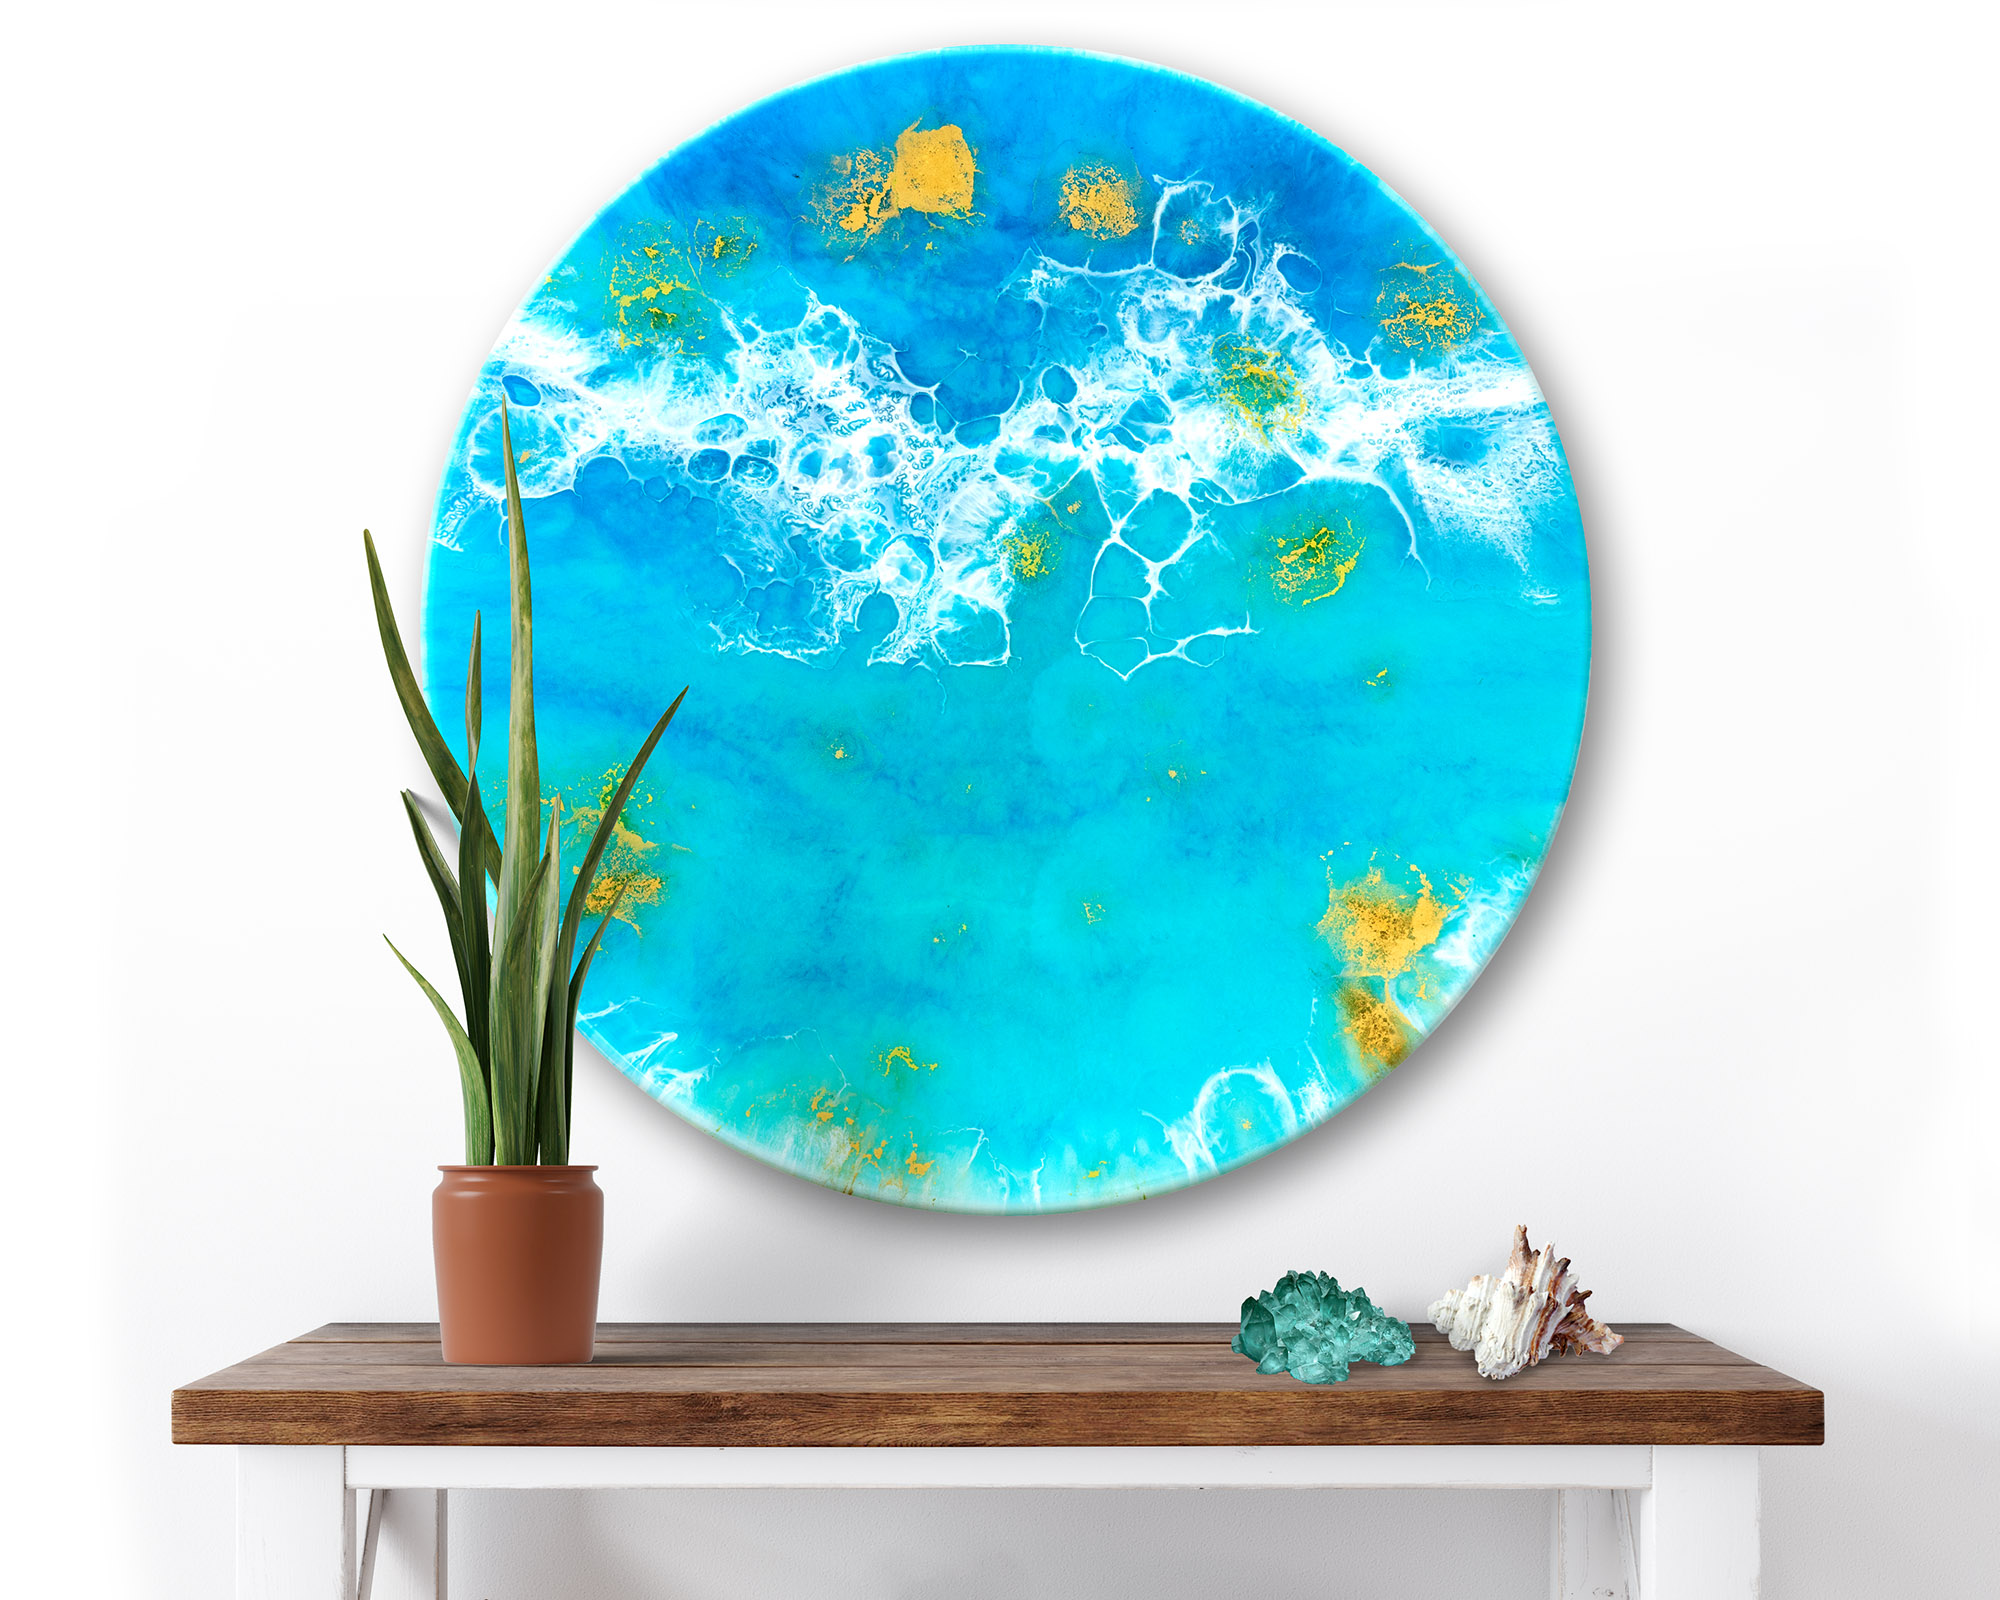 Ocean Resin Wave Art Metallic Gold Round Shimmer By Michelle Tracey